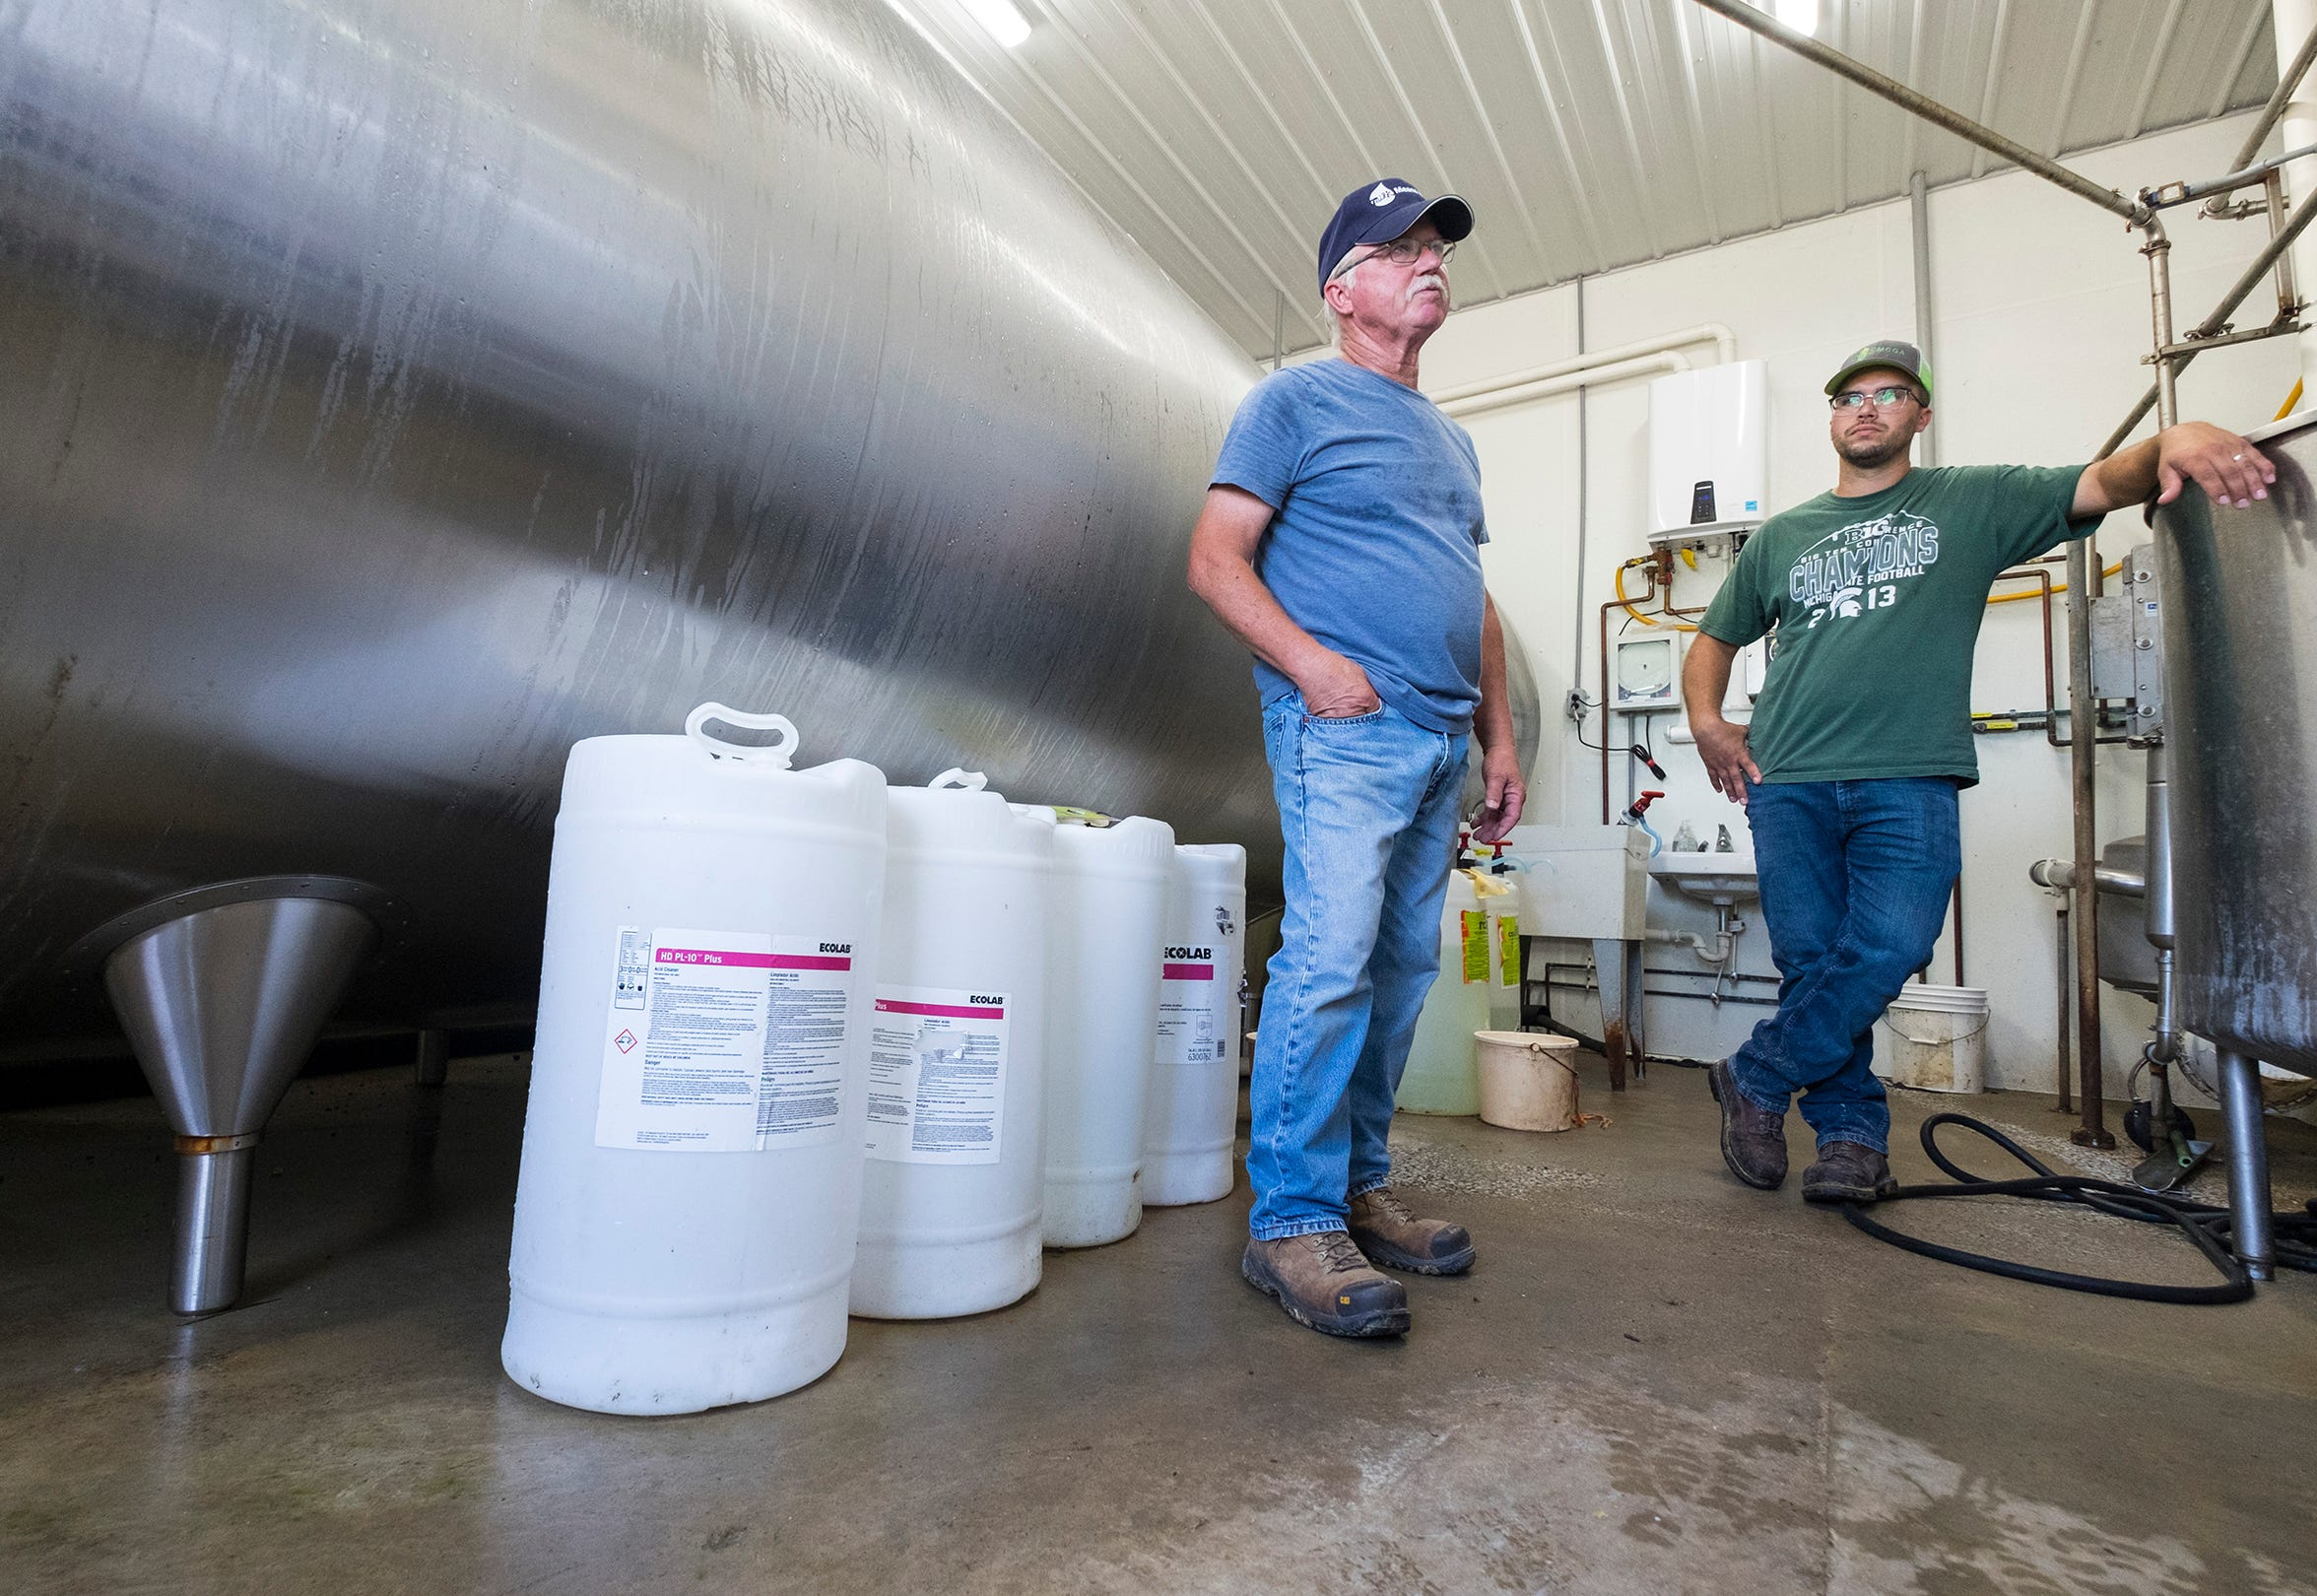 Jim Reid, left, and his son Jeff talk next to a milk cooler Tuesday, Sept. 4, 2018. Dairy farmers are increasingly facing difficulties to stay in business amid too much product for too little demand, falling prices and Donald Trump's trade negotiations.